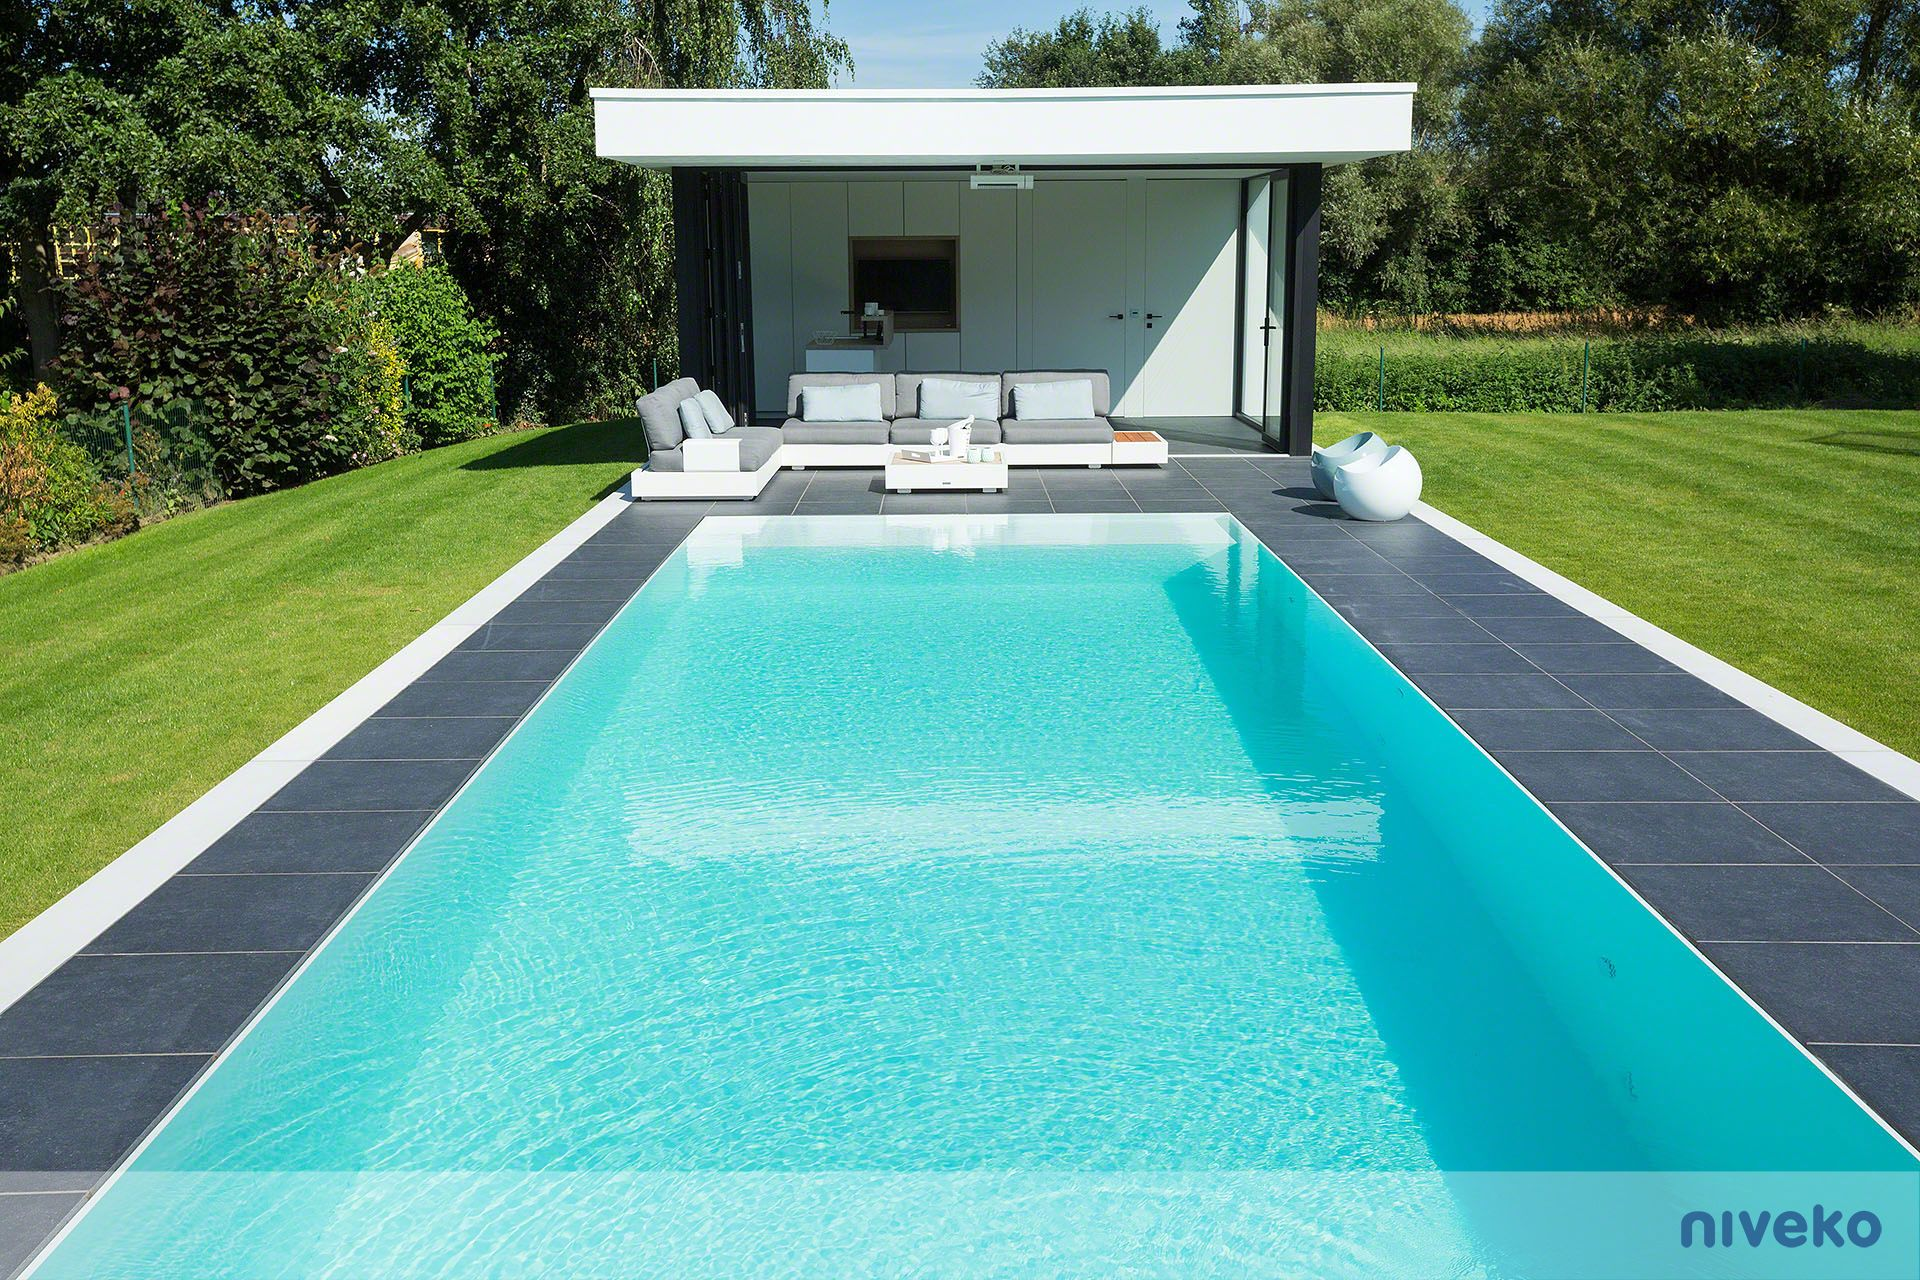 NIVEKO Evolution » Niveko Pools.com #lifestyle #design #health #summer  #relaxation #architecture #pooldesign #gardendesign #pool #swimmingpool  #pools ...